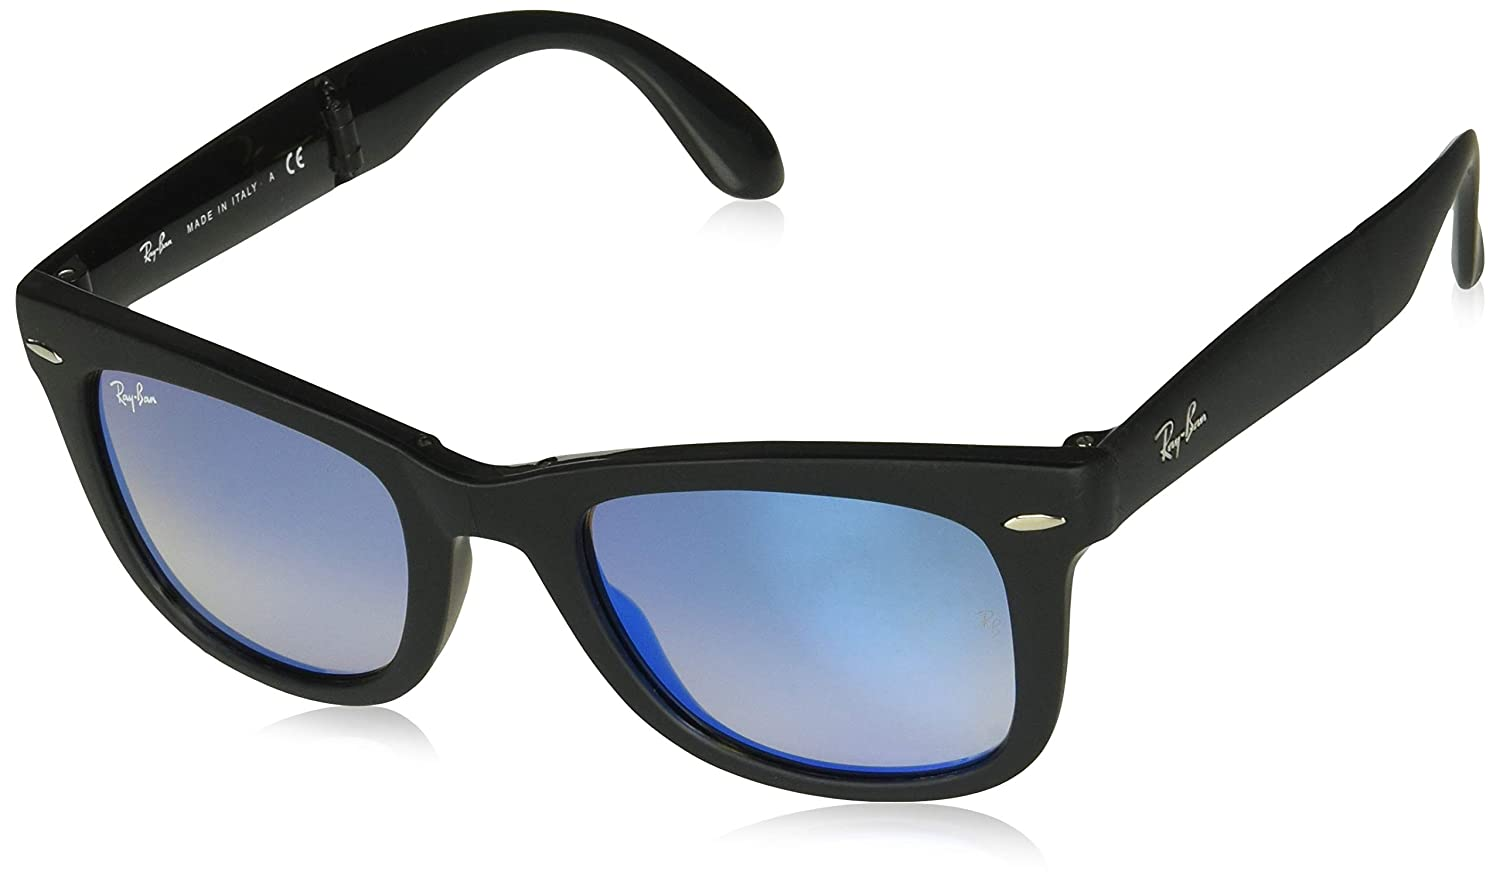 d838789e14 Amazon.com  Ray-Ban Men s Folding Wayfarer Sunglasses